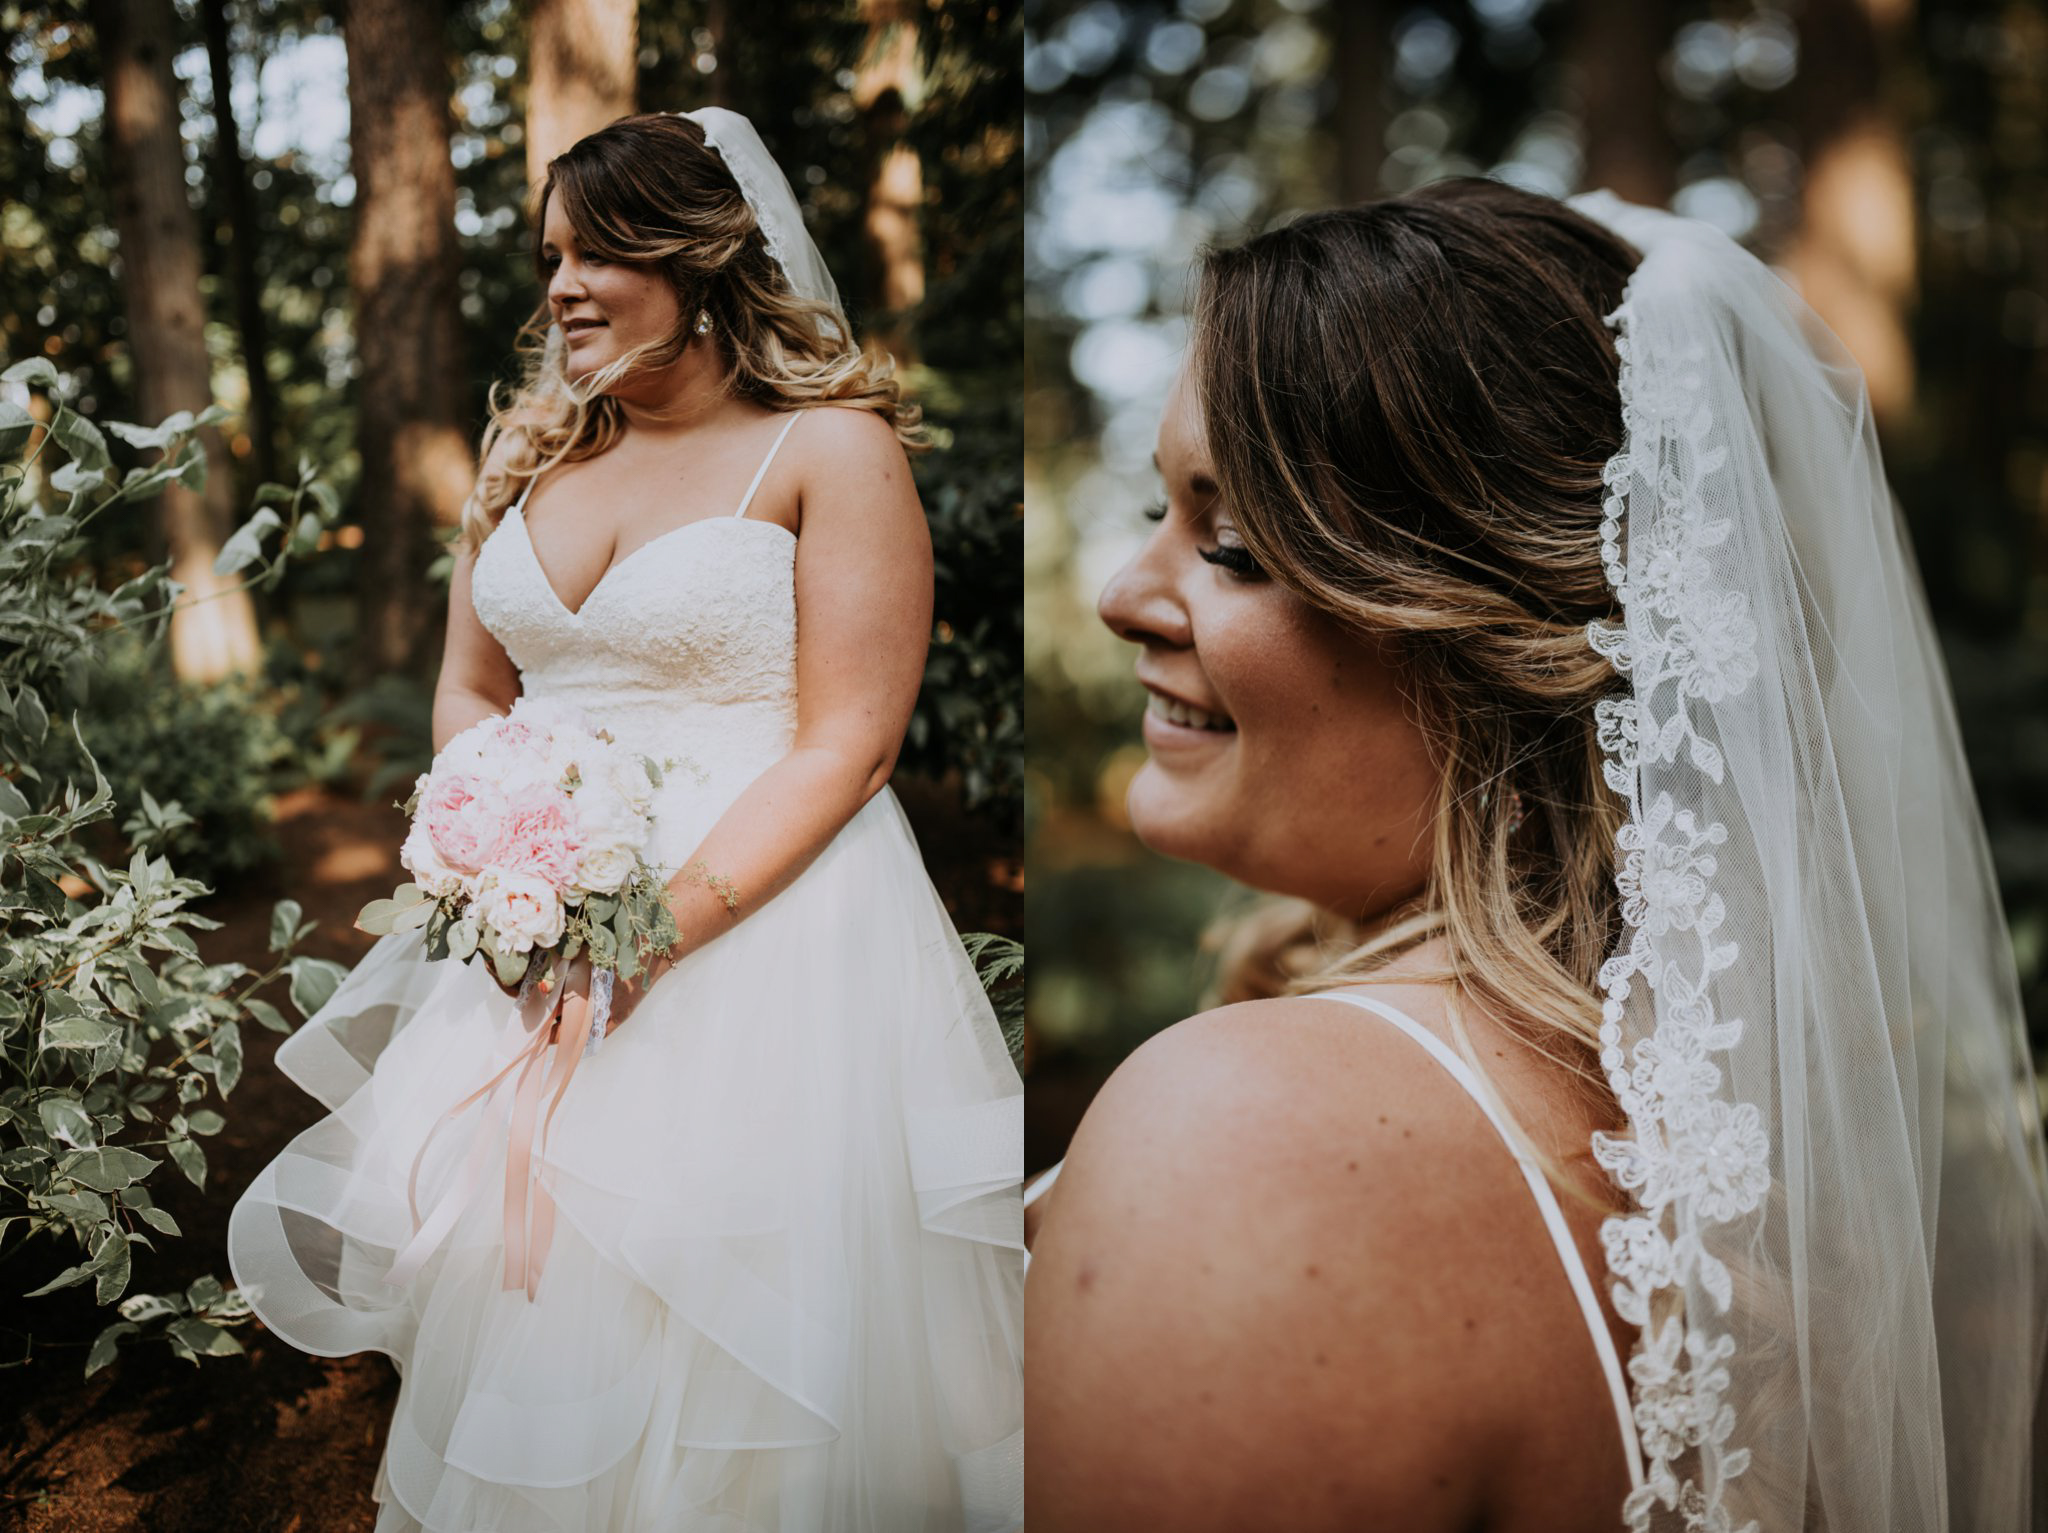 evergreen-gardens-bellingham-wedding-seattle-photographer-caitlyn-nikula-82.jpg